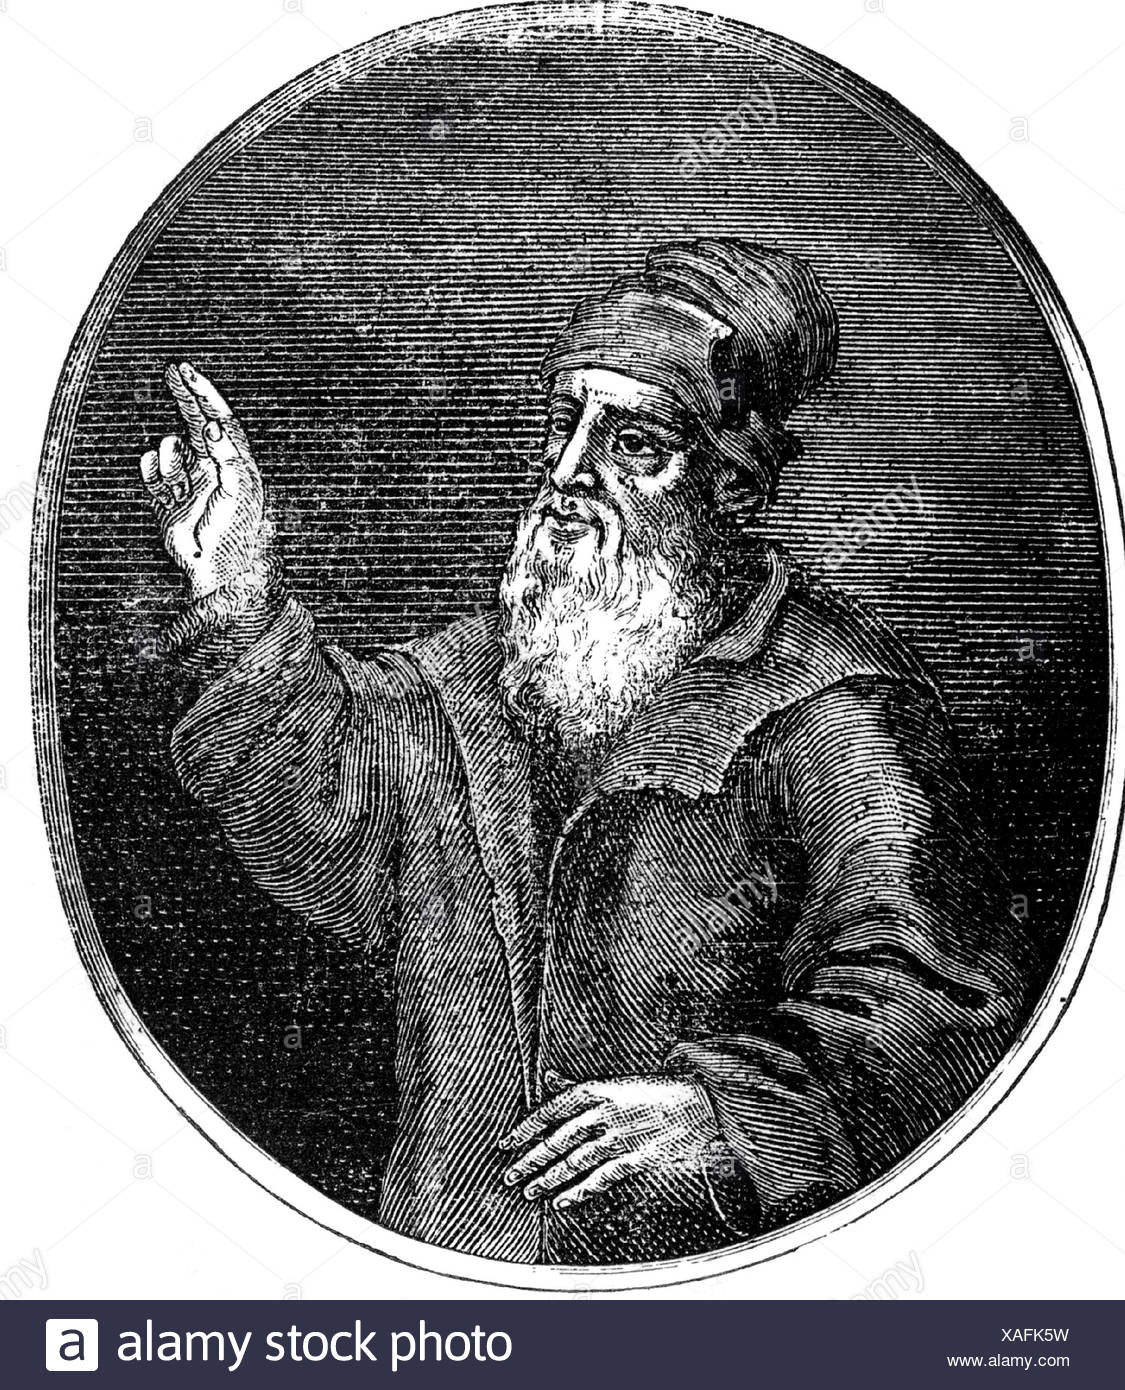 Schedel, Hartmann, 13.2.1440 - 28.11.1514, German physician, humanist, historian, half length, oval, wood engraving, 19th century, after contemporary illustration, Artist's Copyright has not to be cleared - Stock Image